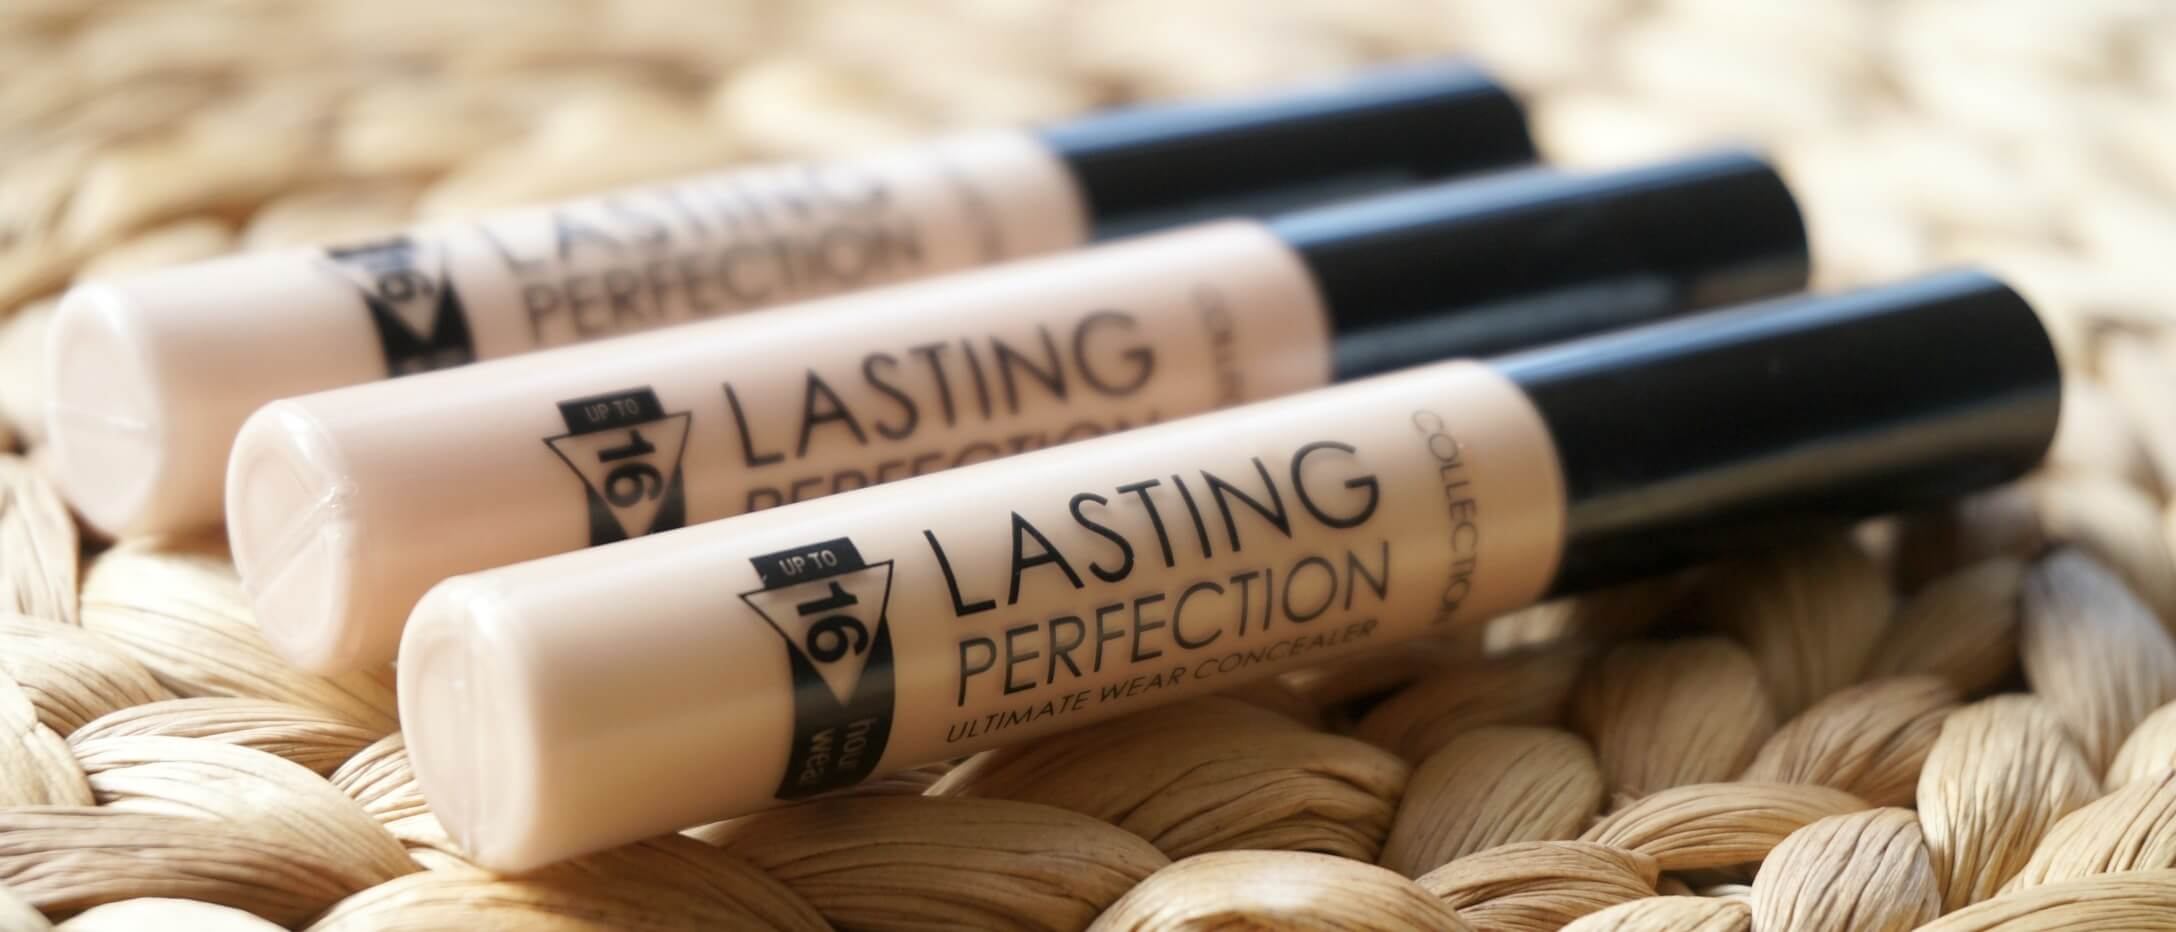 Collection Lasting Perfection Concealer